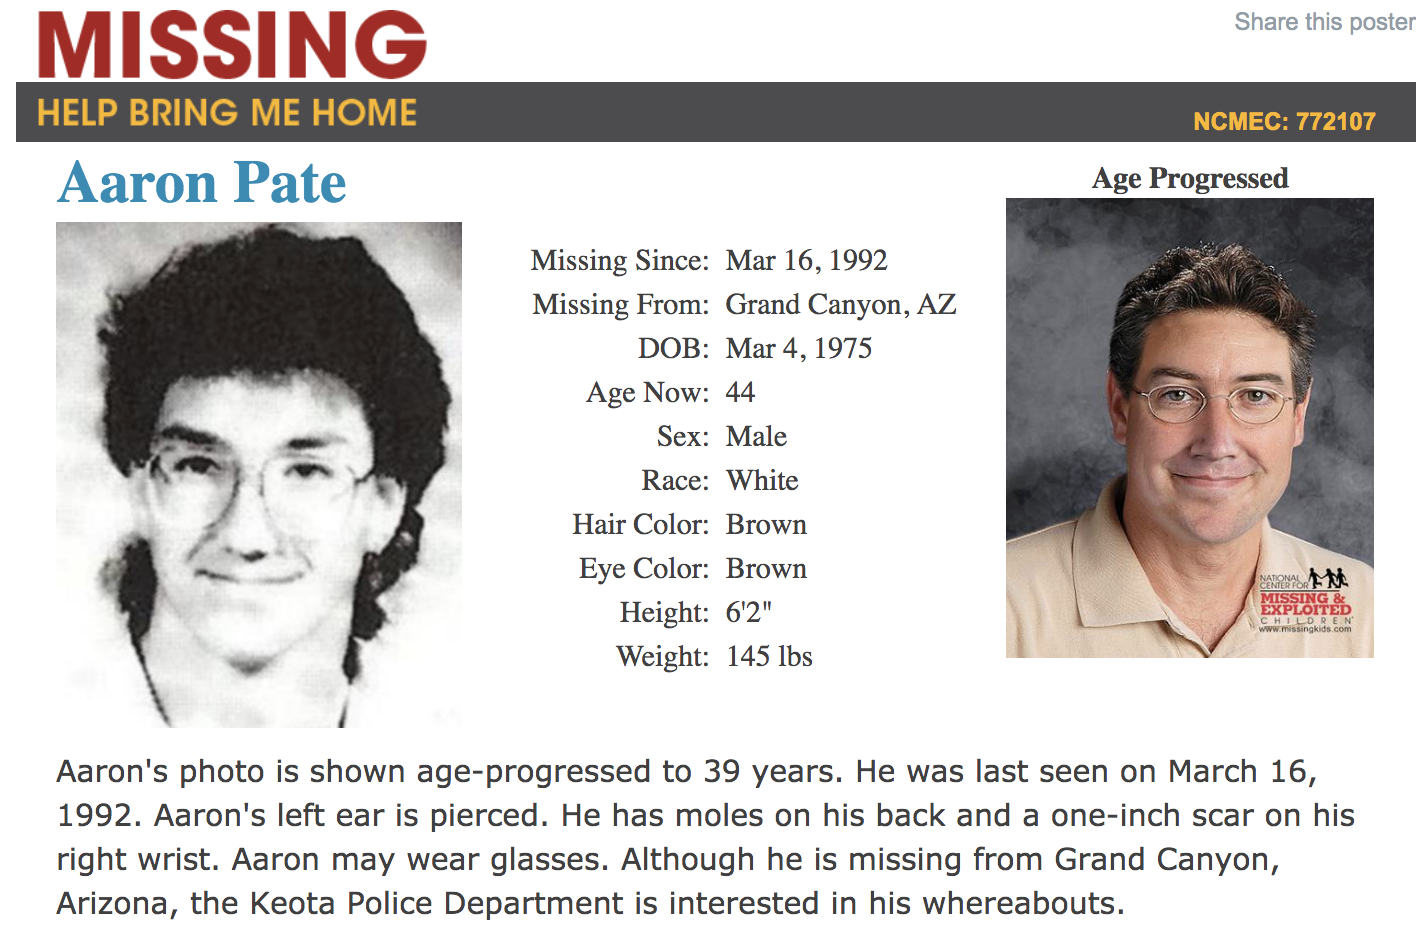 PHOTOS: 183 missing and unidentified children in Arizona